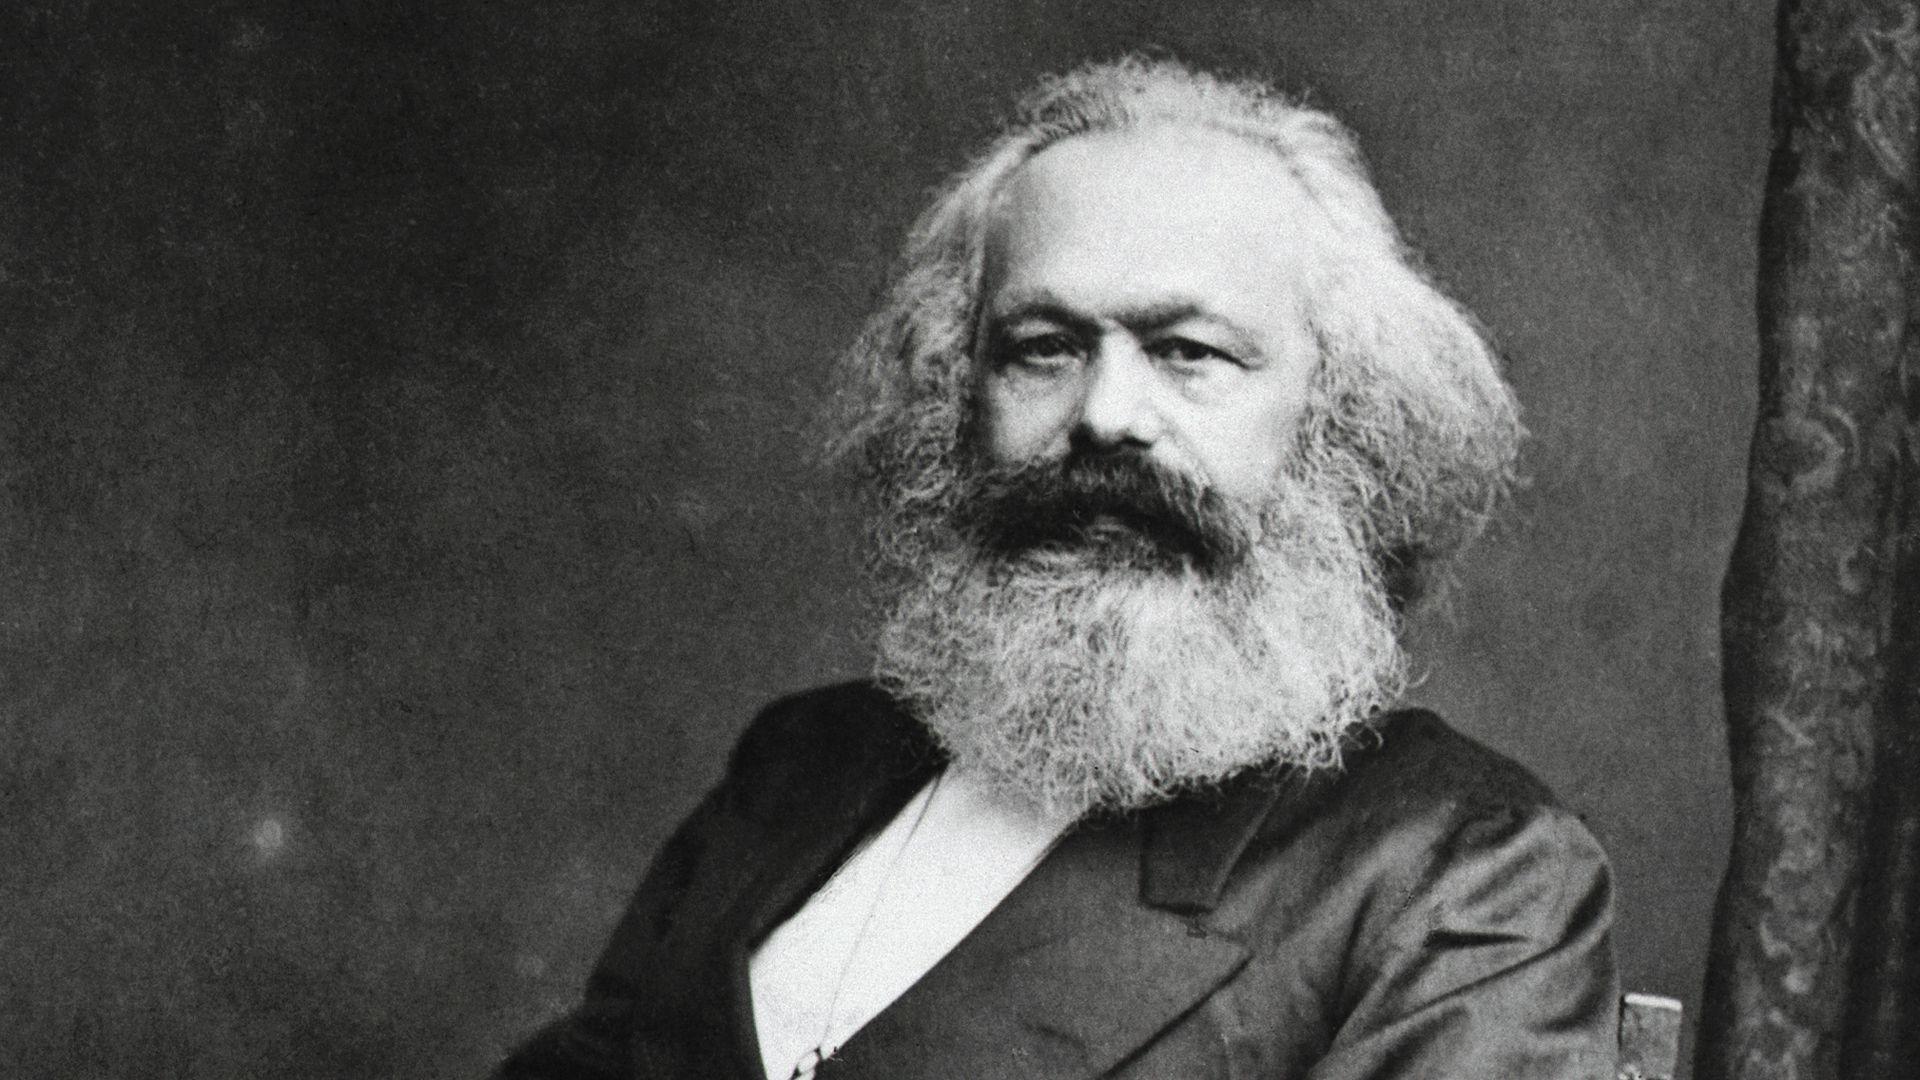 Photo of  German Political Philosopher Karl Marx sitting, 1818-1883.